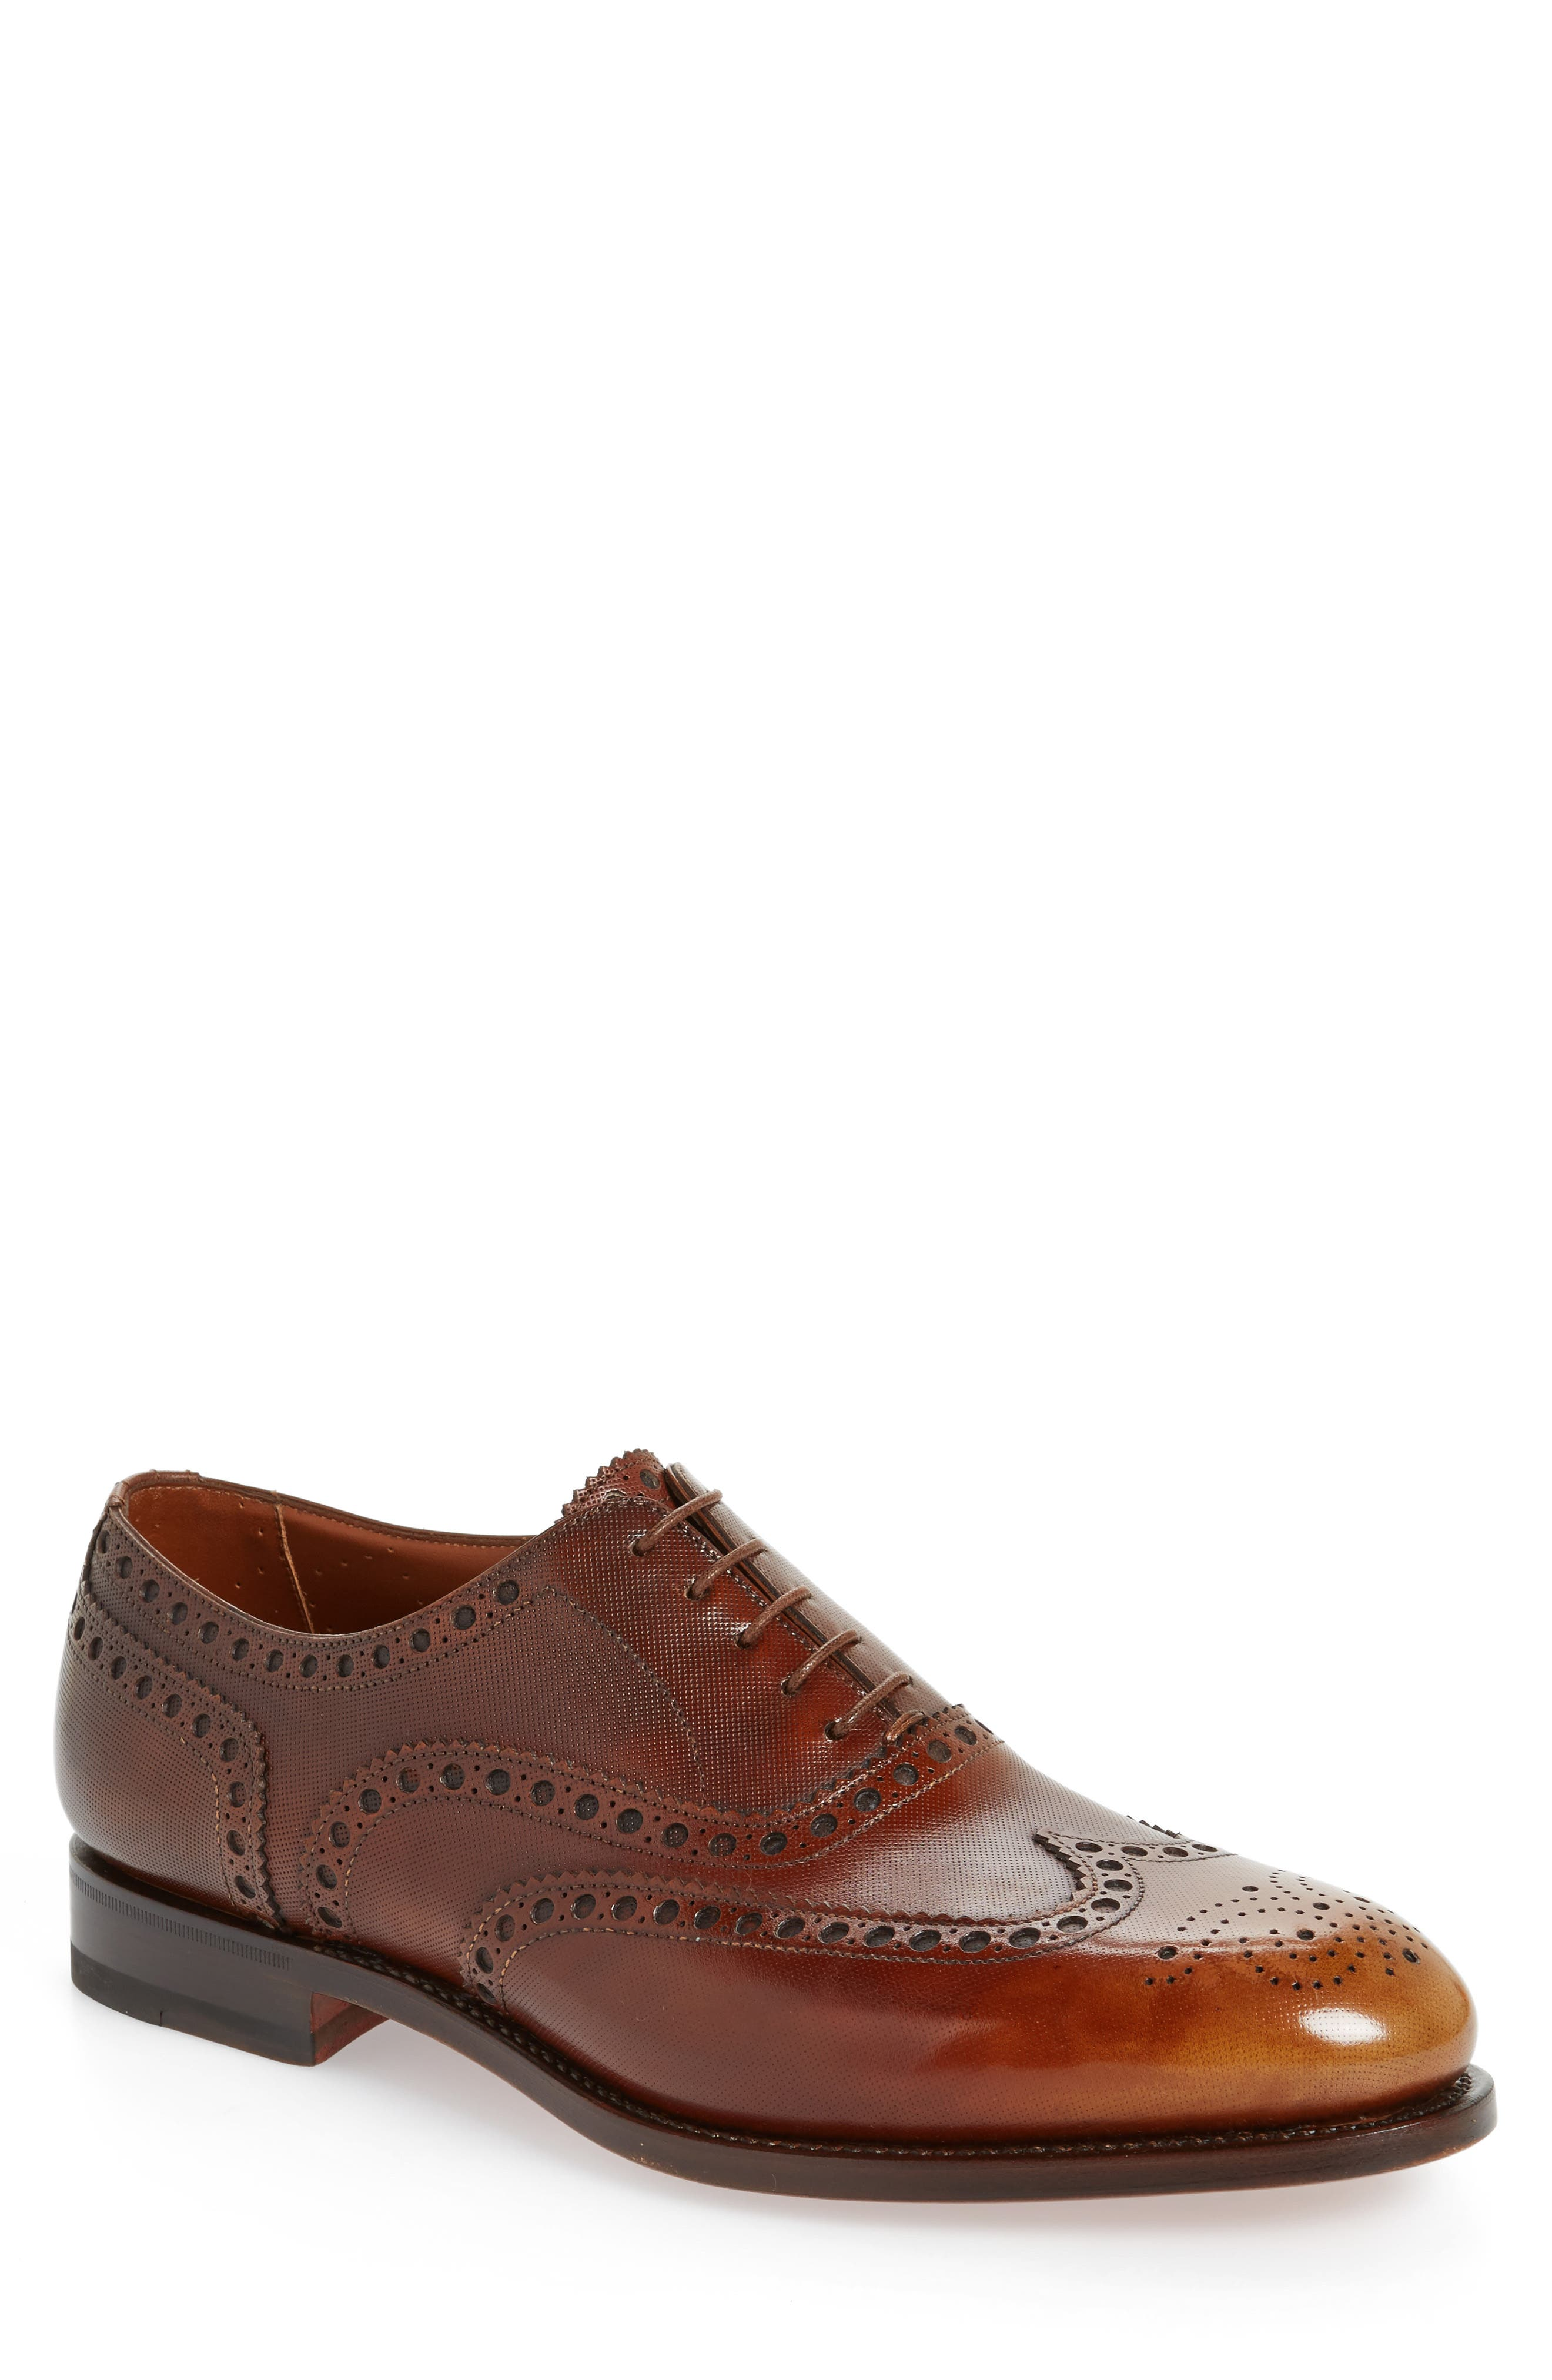 Fatte-A-Mano Wingtip,                         Main,                         color,